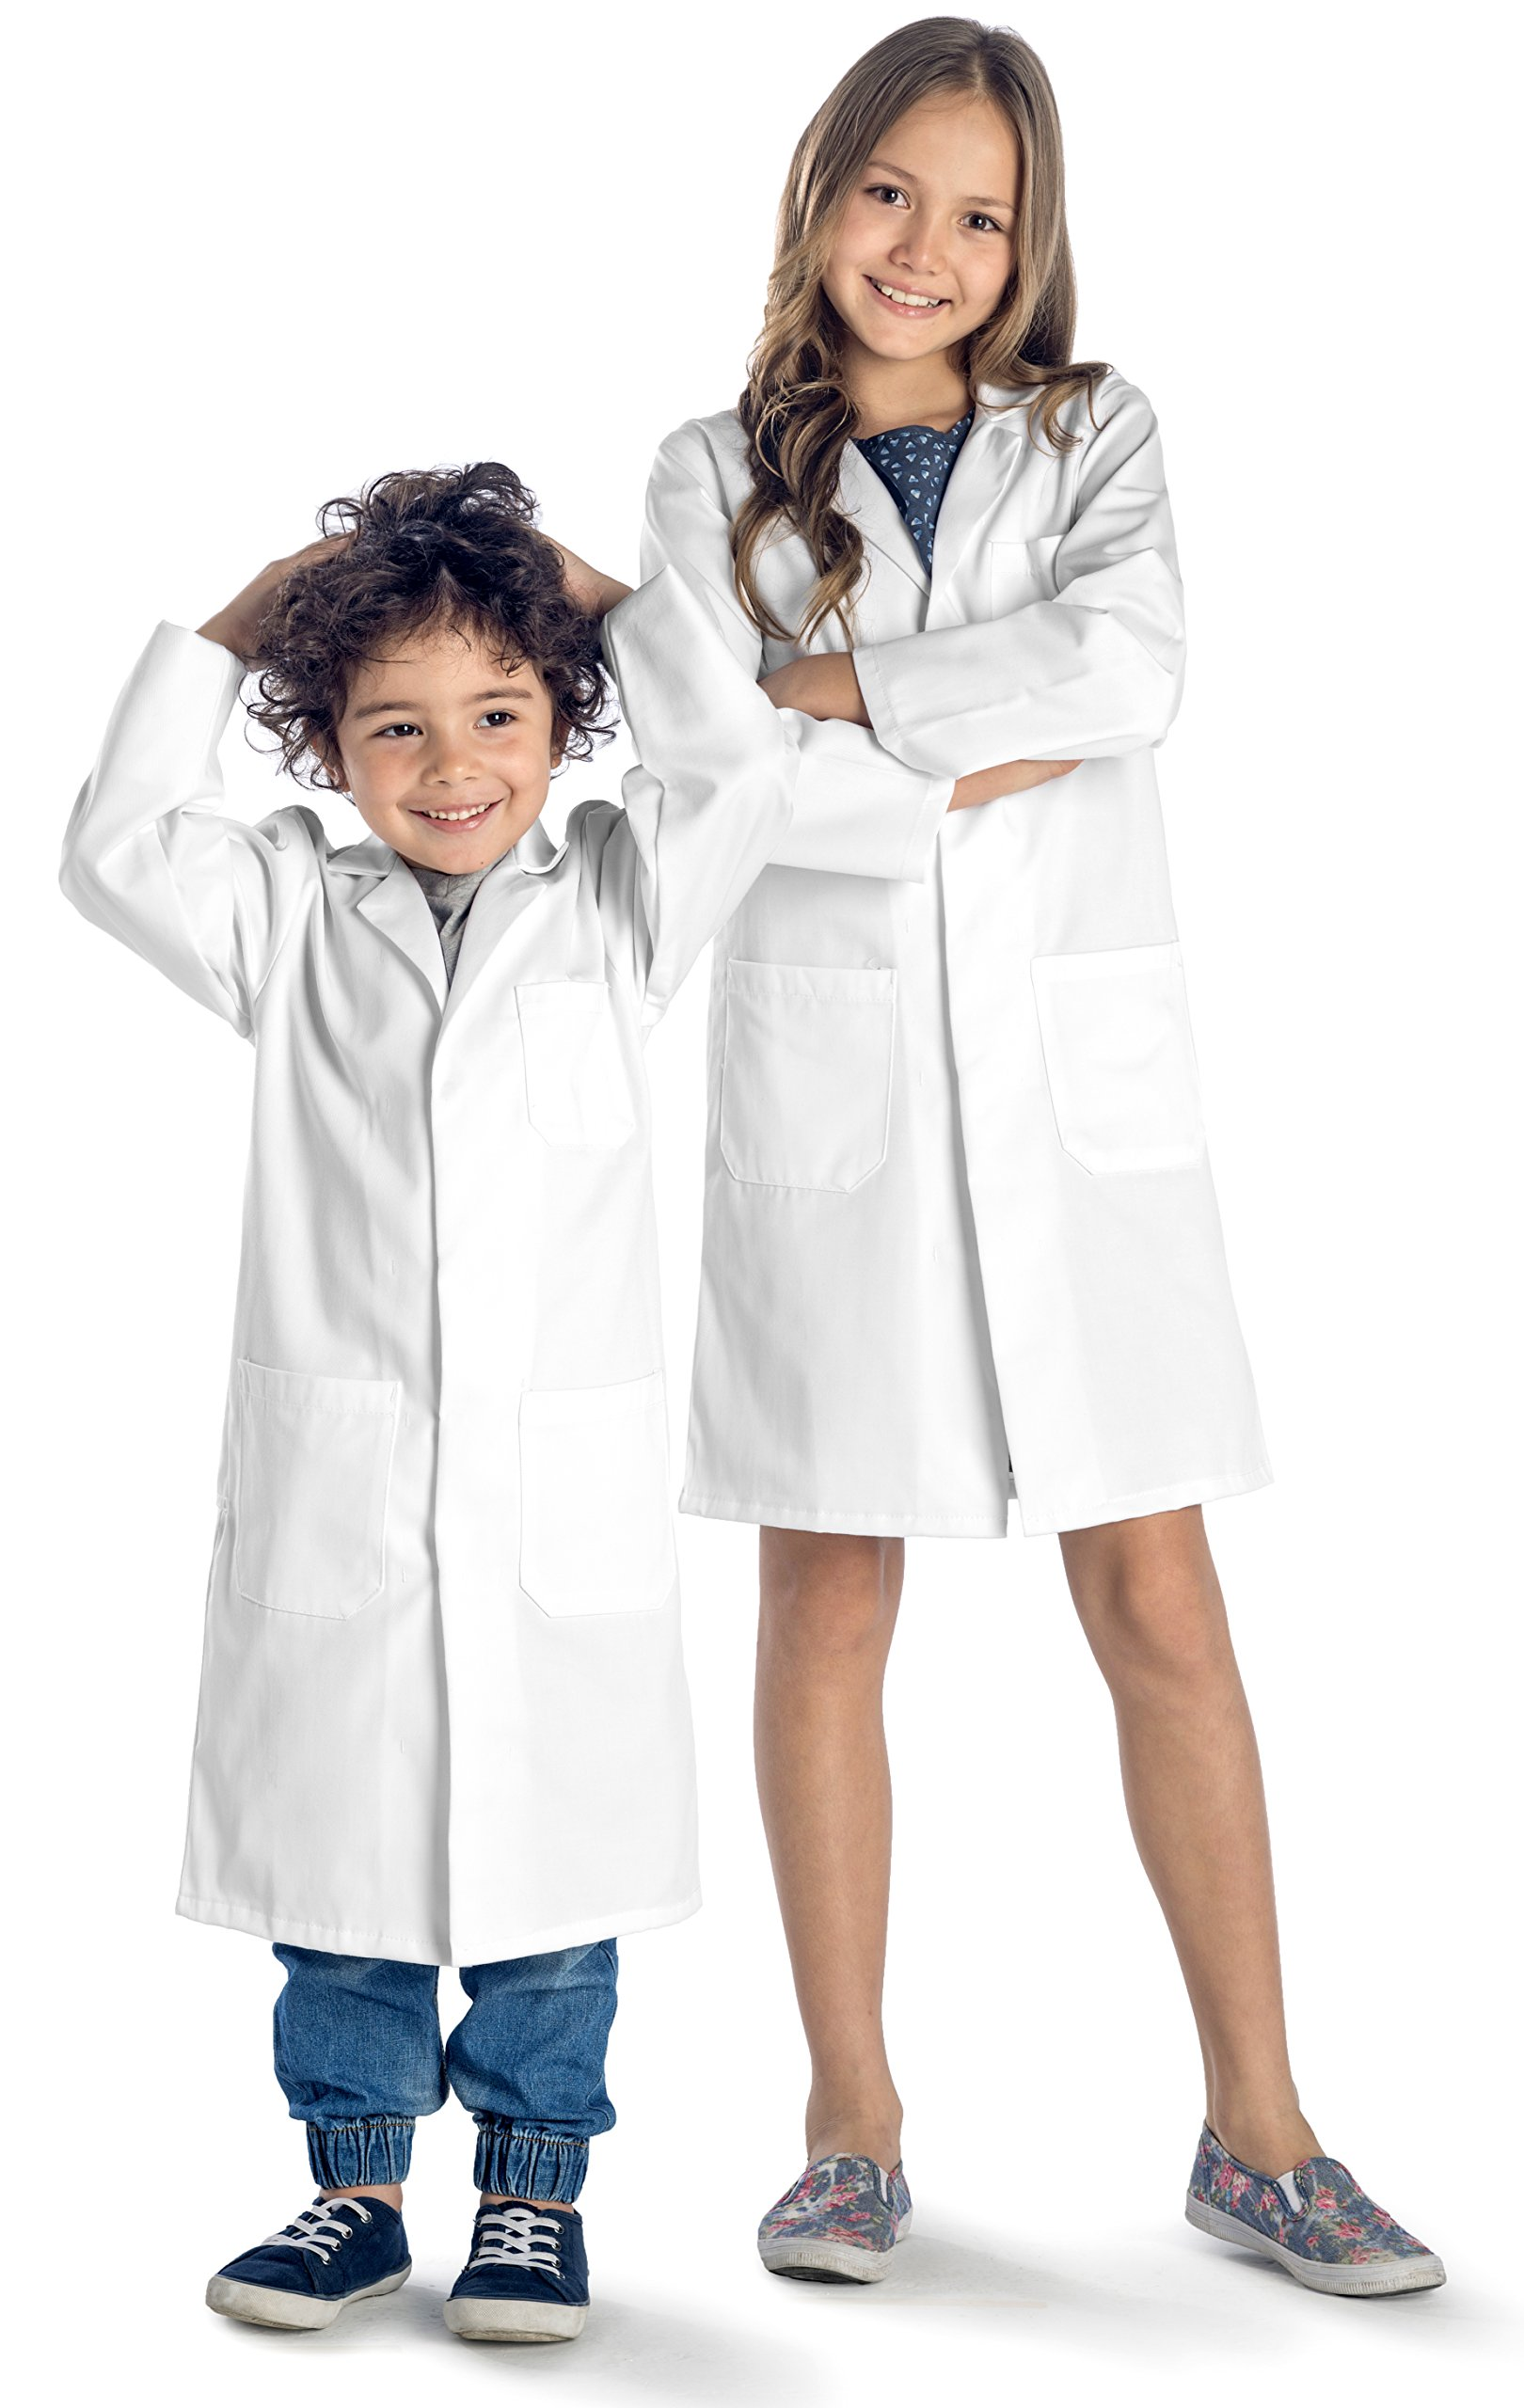 Dr. James Durable Kids Lab Coat with Safety Snap Buttons